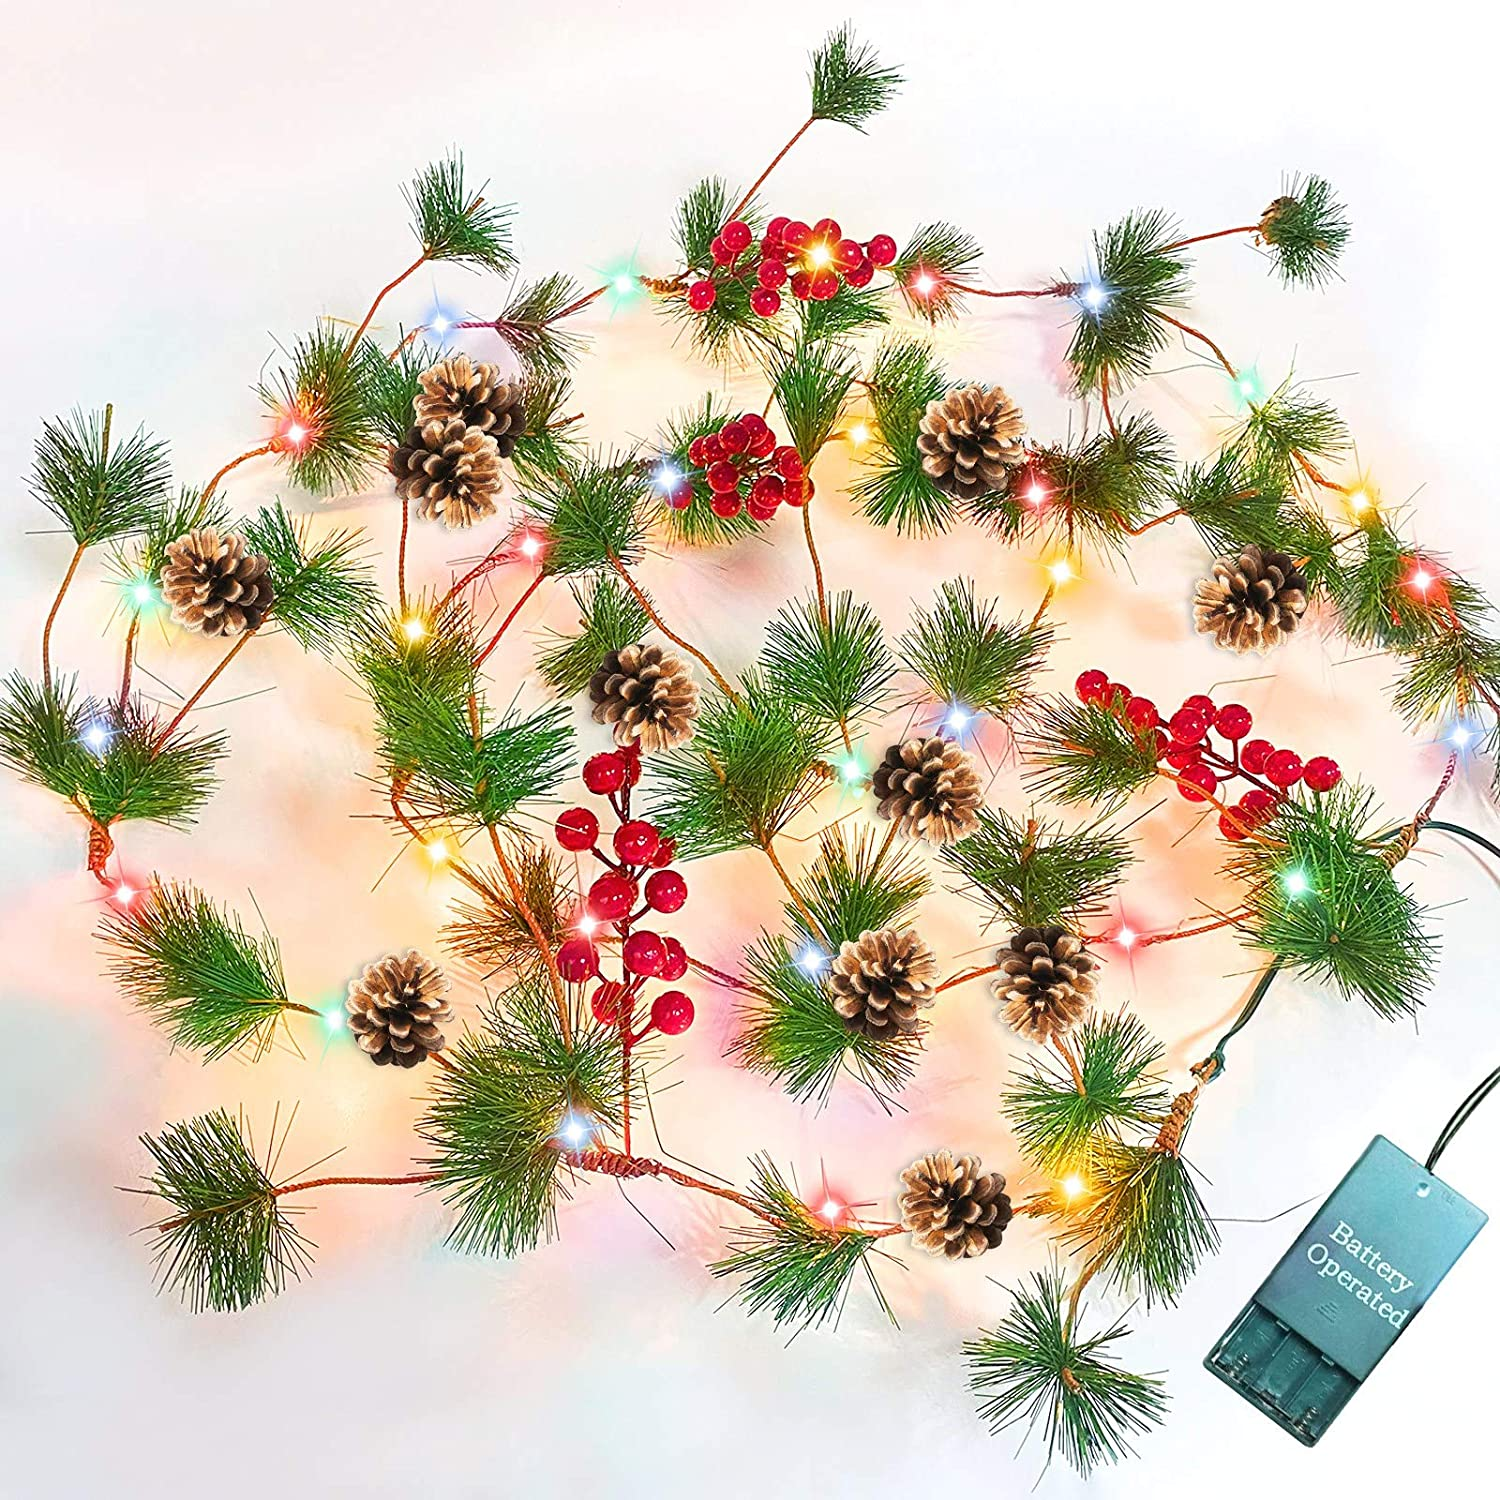 TURNMEON 10FT Christmas Garland with 30 Lights, Christmas Pinecone Lights Battery Operated Red Berry Pine Cone Bristle Xmas Decor (Color)